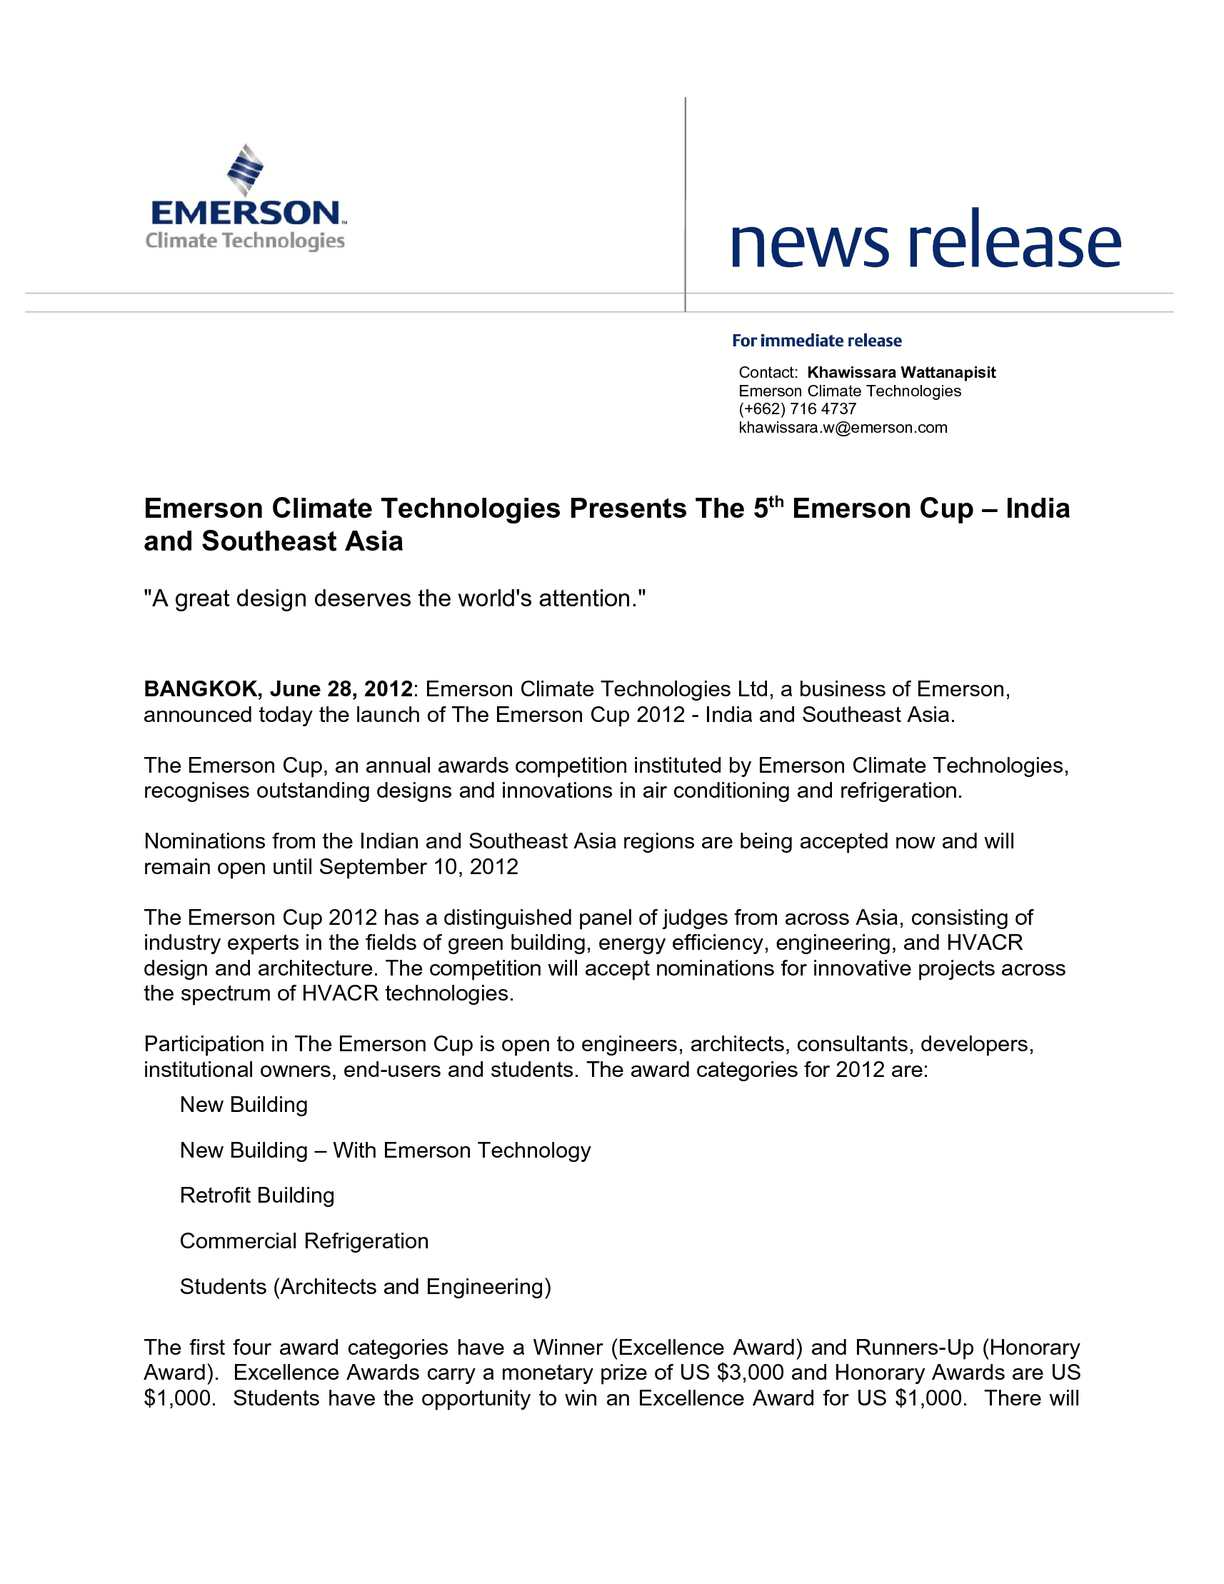 Calaméo - Emerson Climate Technologies Presents The 5th